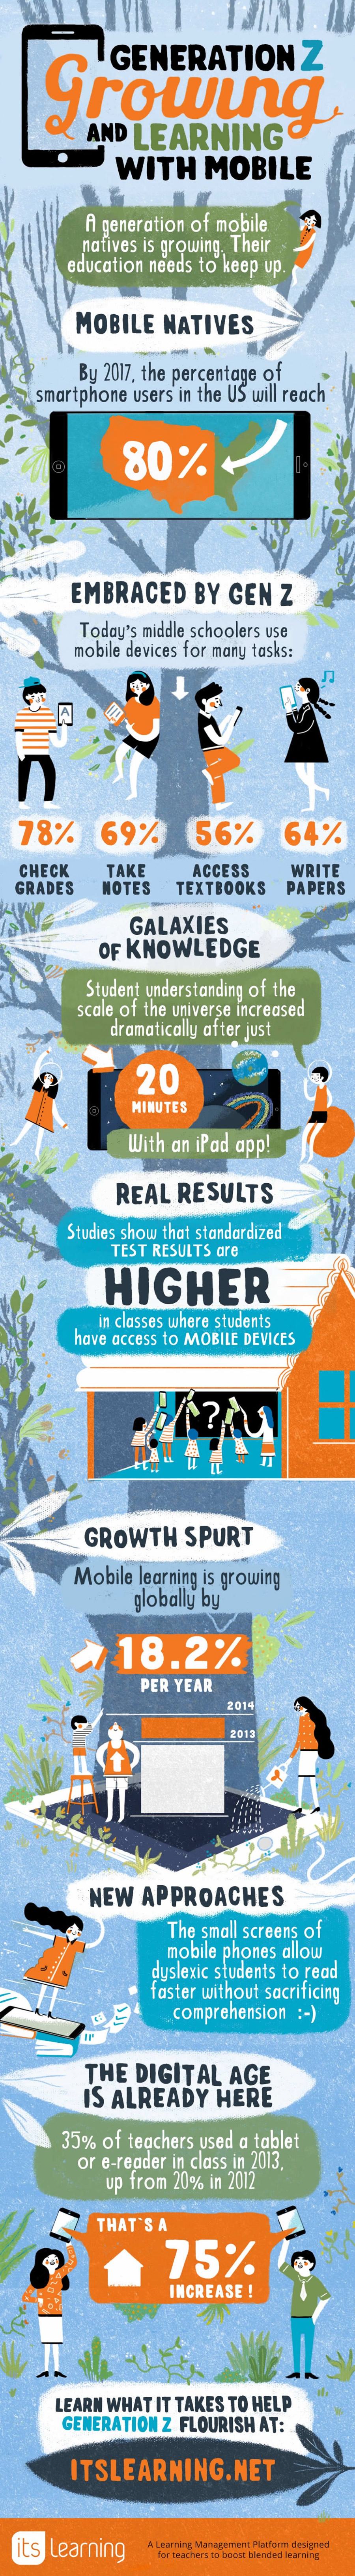 Growing-and-Learning-with-Mobile-Infographic-1000x7257.jpg